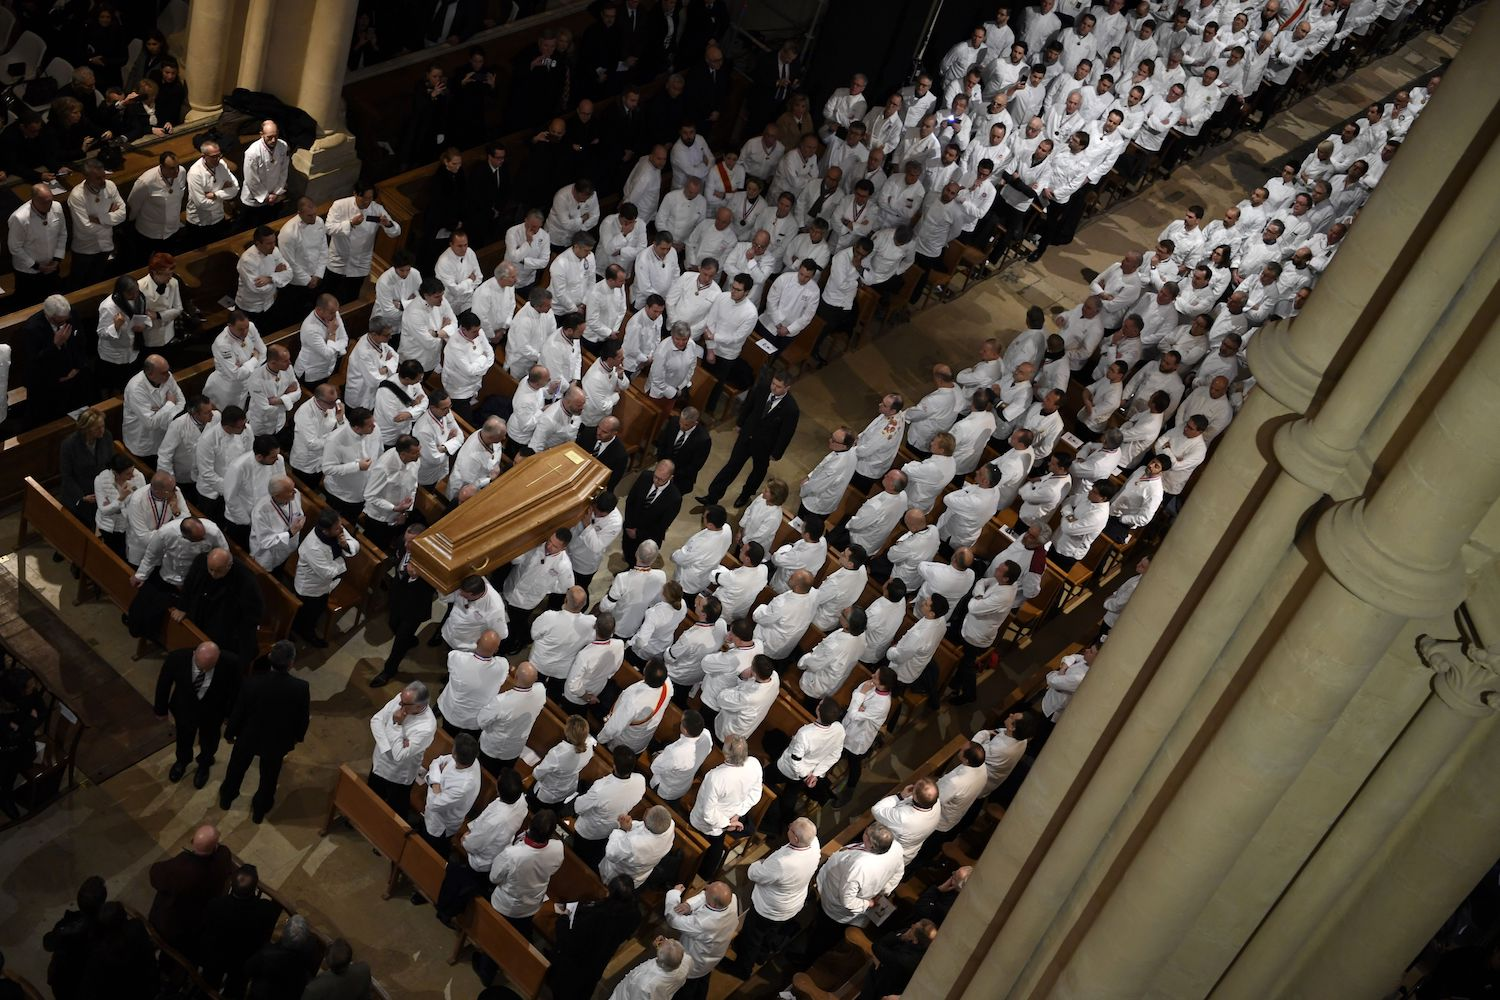 "Chefs carry the coffin of French chef Paul Bocuse  during the funeral ceremony at the Saint-Jean Cathedral in Lyon on Jan. 26. More than 1,500 chefs from around the world along with thousands of fans of French cuisine were expected in Lyon on January 26, 2018 to honour their ""pope"" Paul Bocuse, who died last January 20 aged 91. / AFP PHOTO / POOL / Philippe DESMAZES        (Photo credit should read PHILIPPE DESMAZES/AFP/Getty Images)"